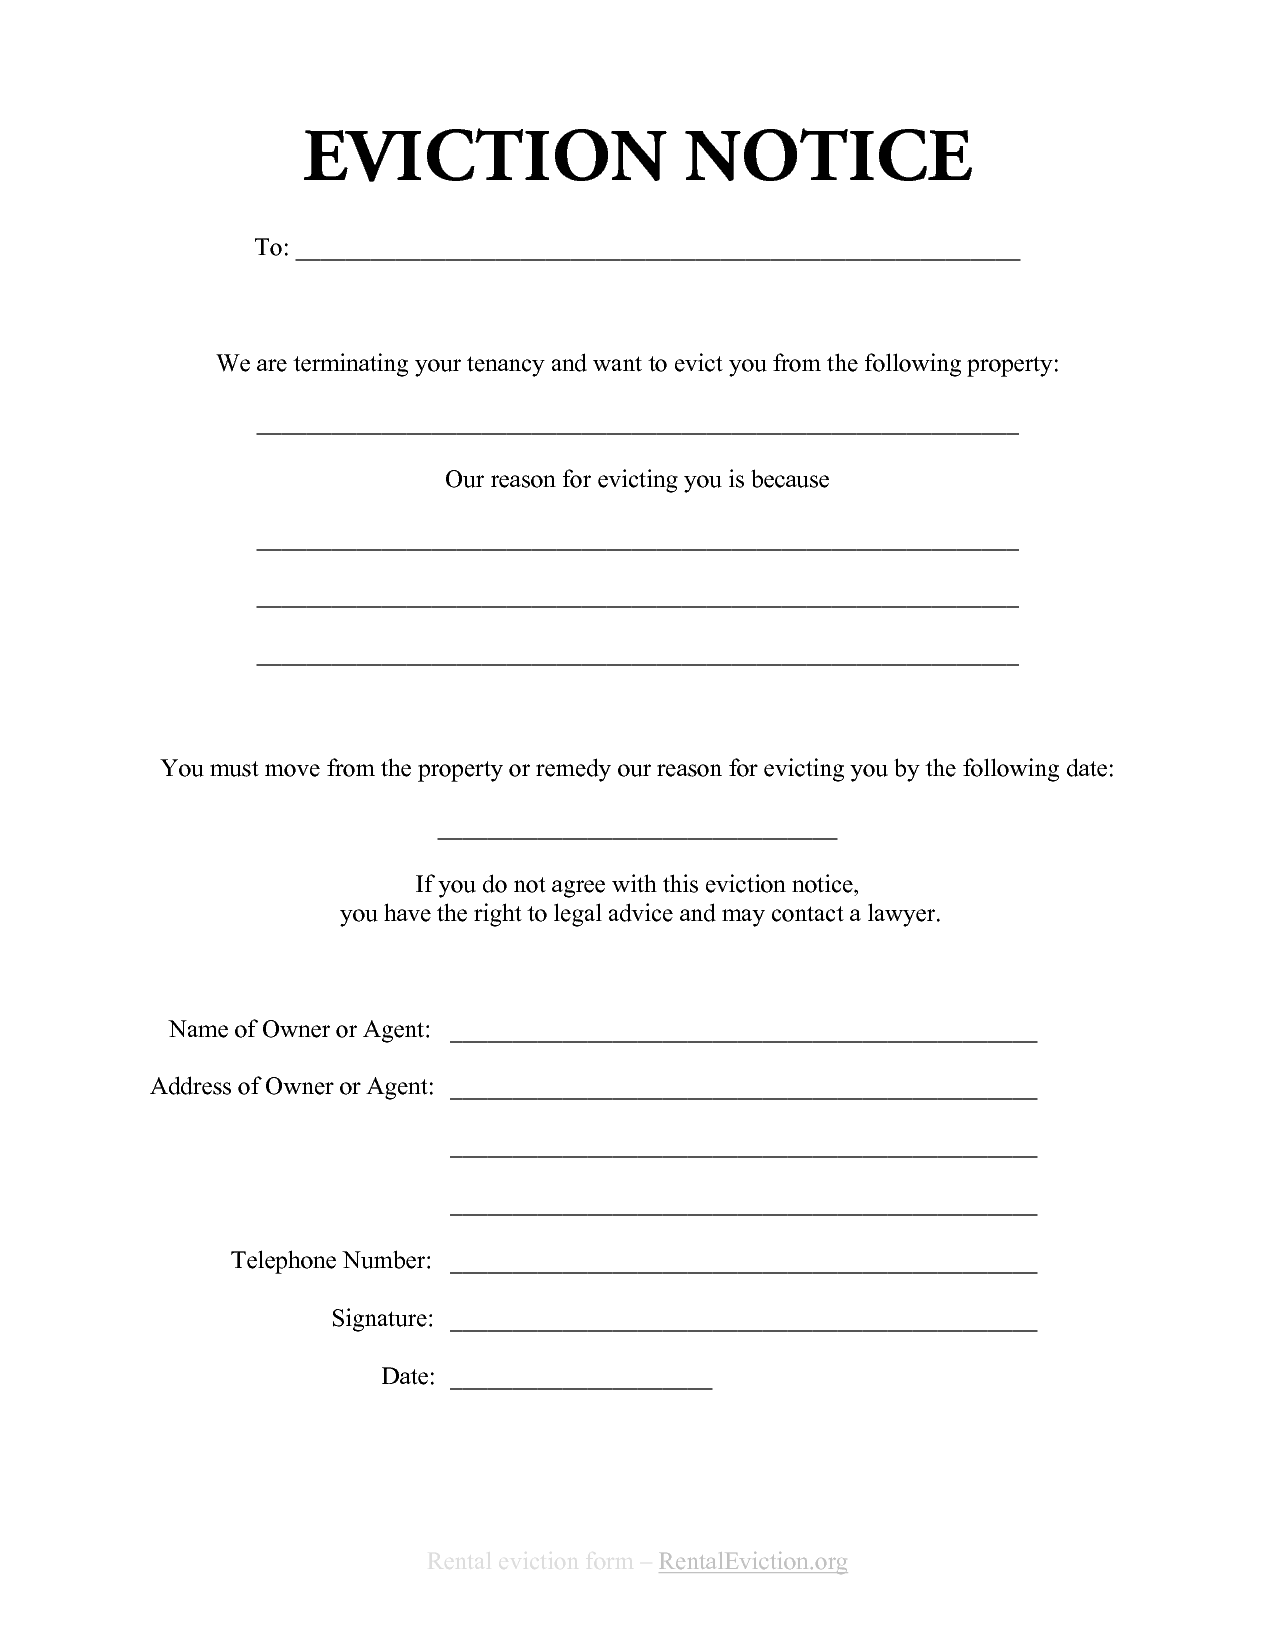 blank eviction notice form word templates tenant eviction print out eviction notices rental eviction notice